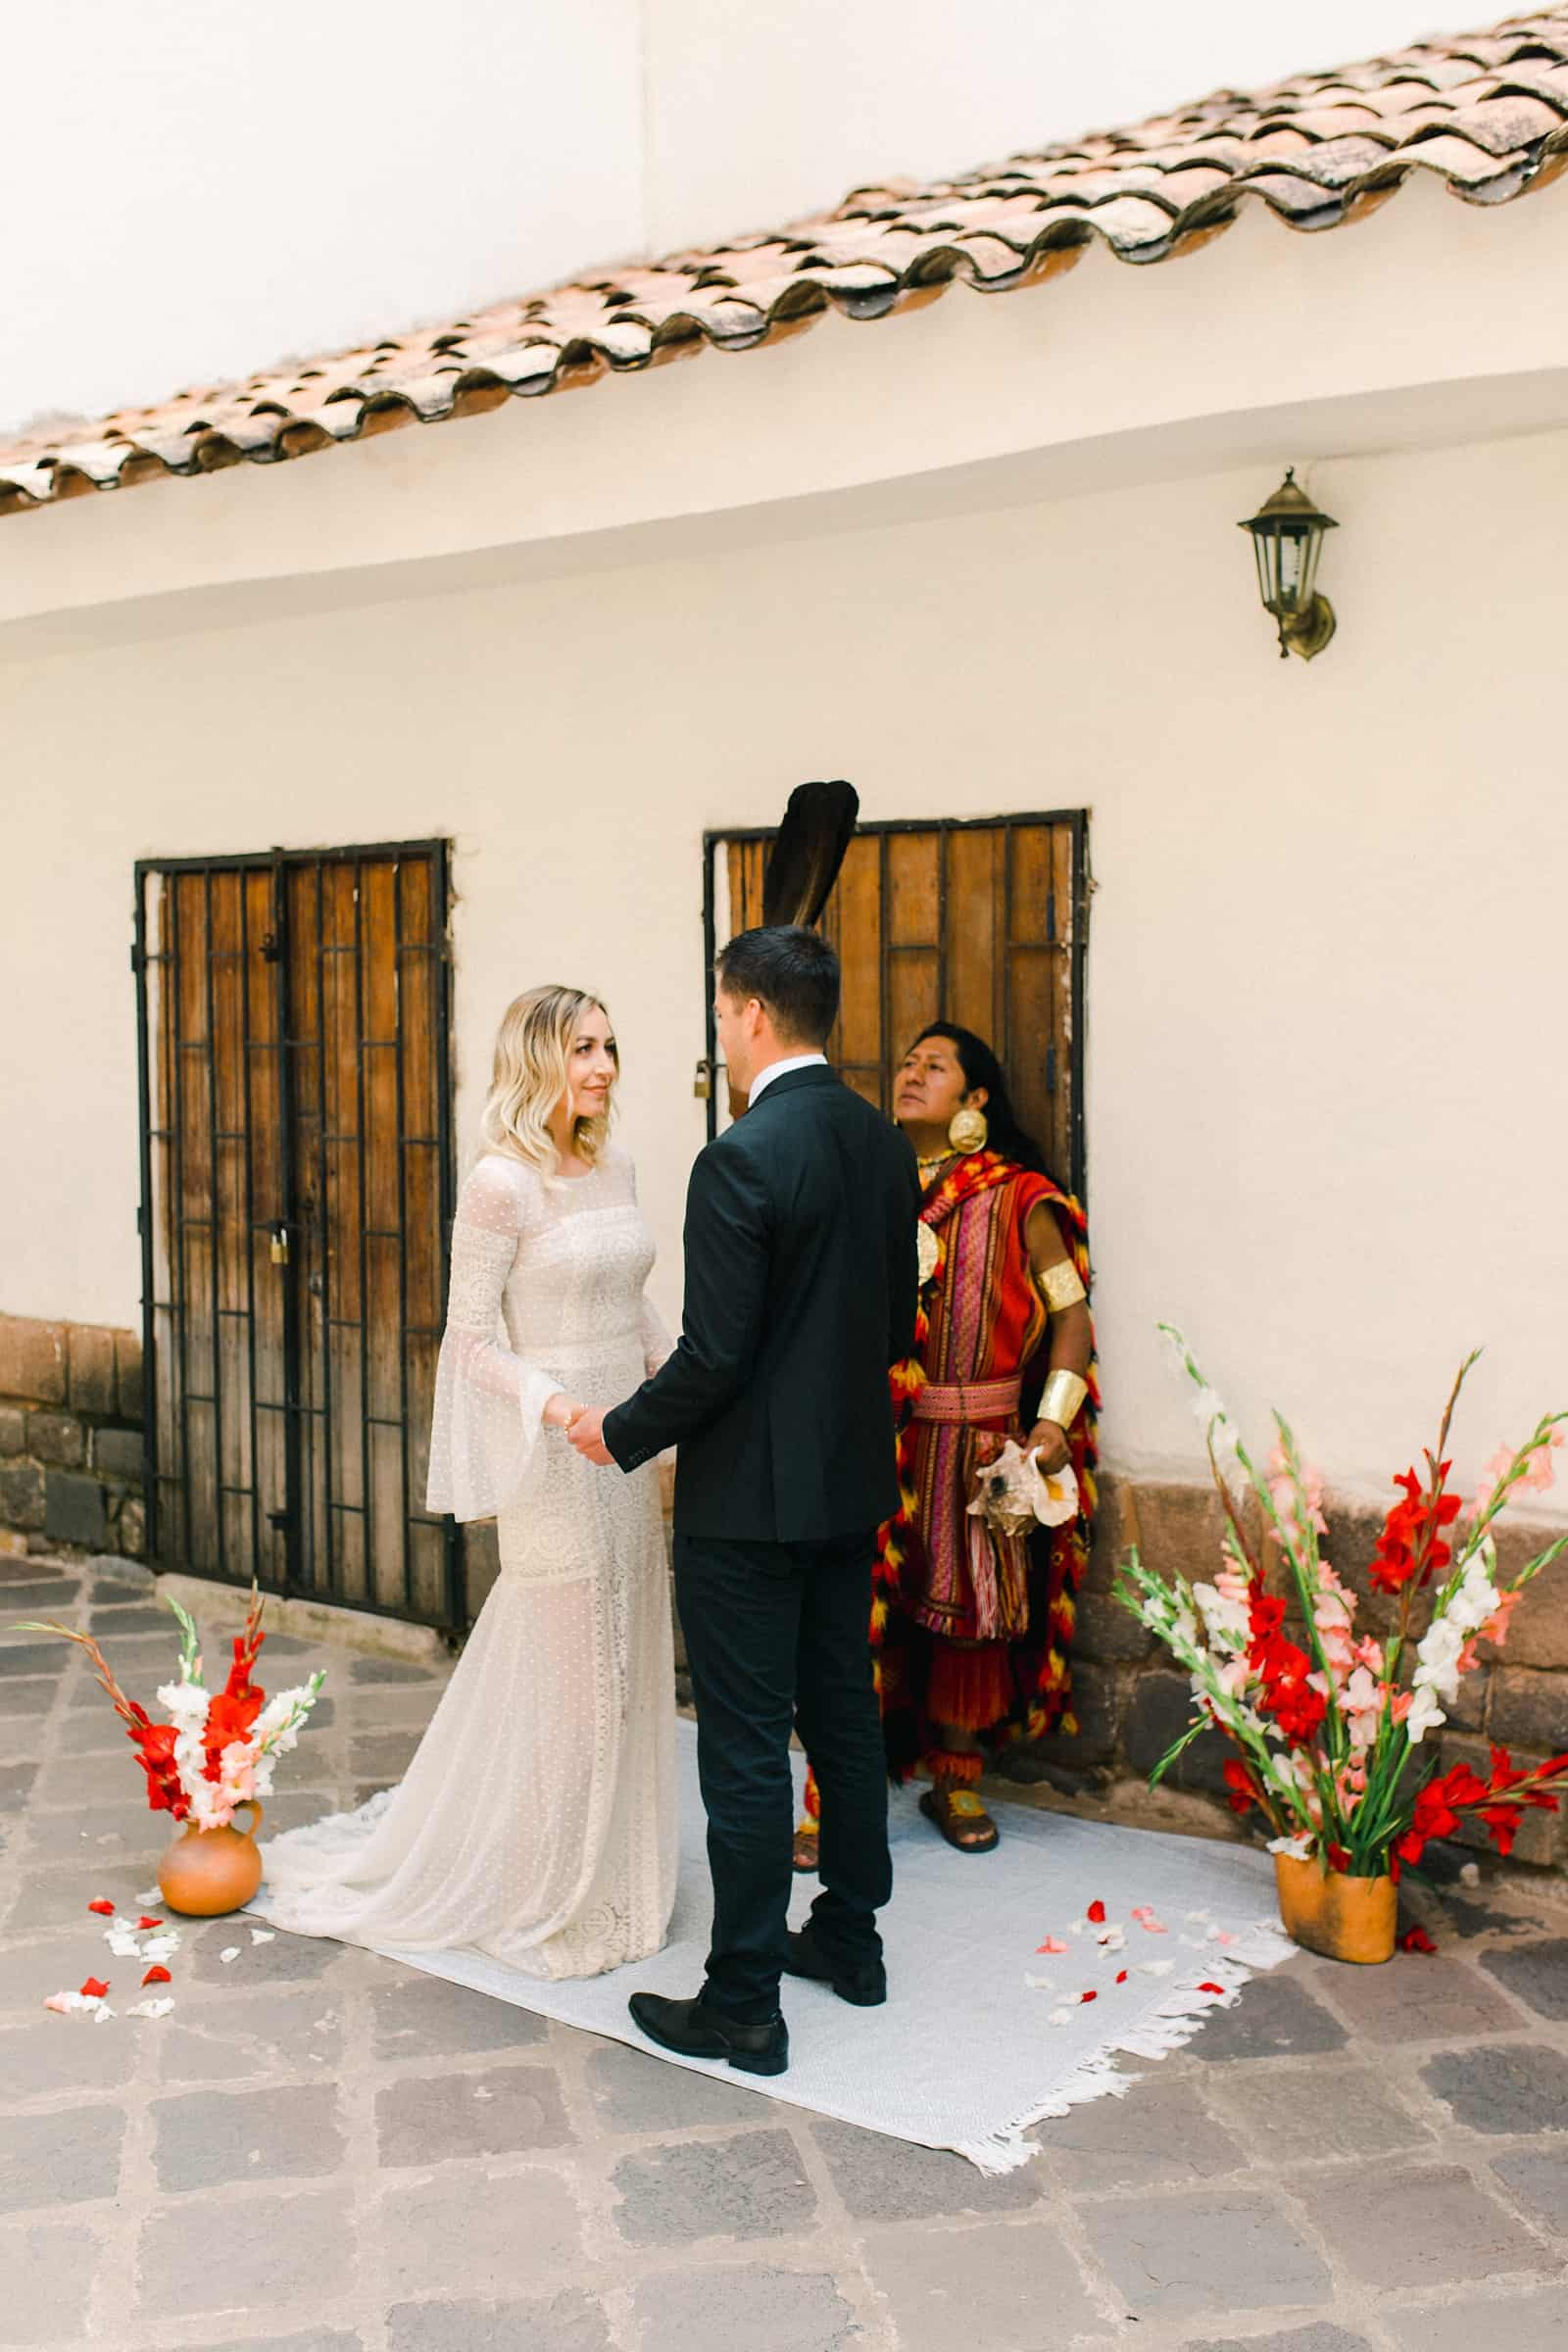 Cusco Peru Destination Wedding, travel wedding photography, Plaza de Armas ceremony with shaman, red flowers boho wedding